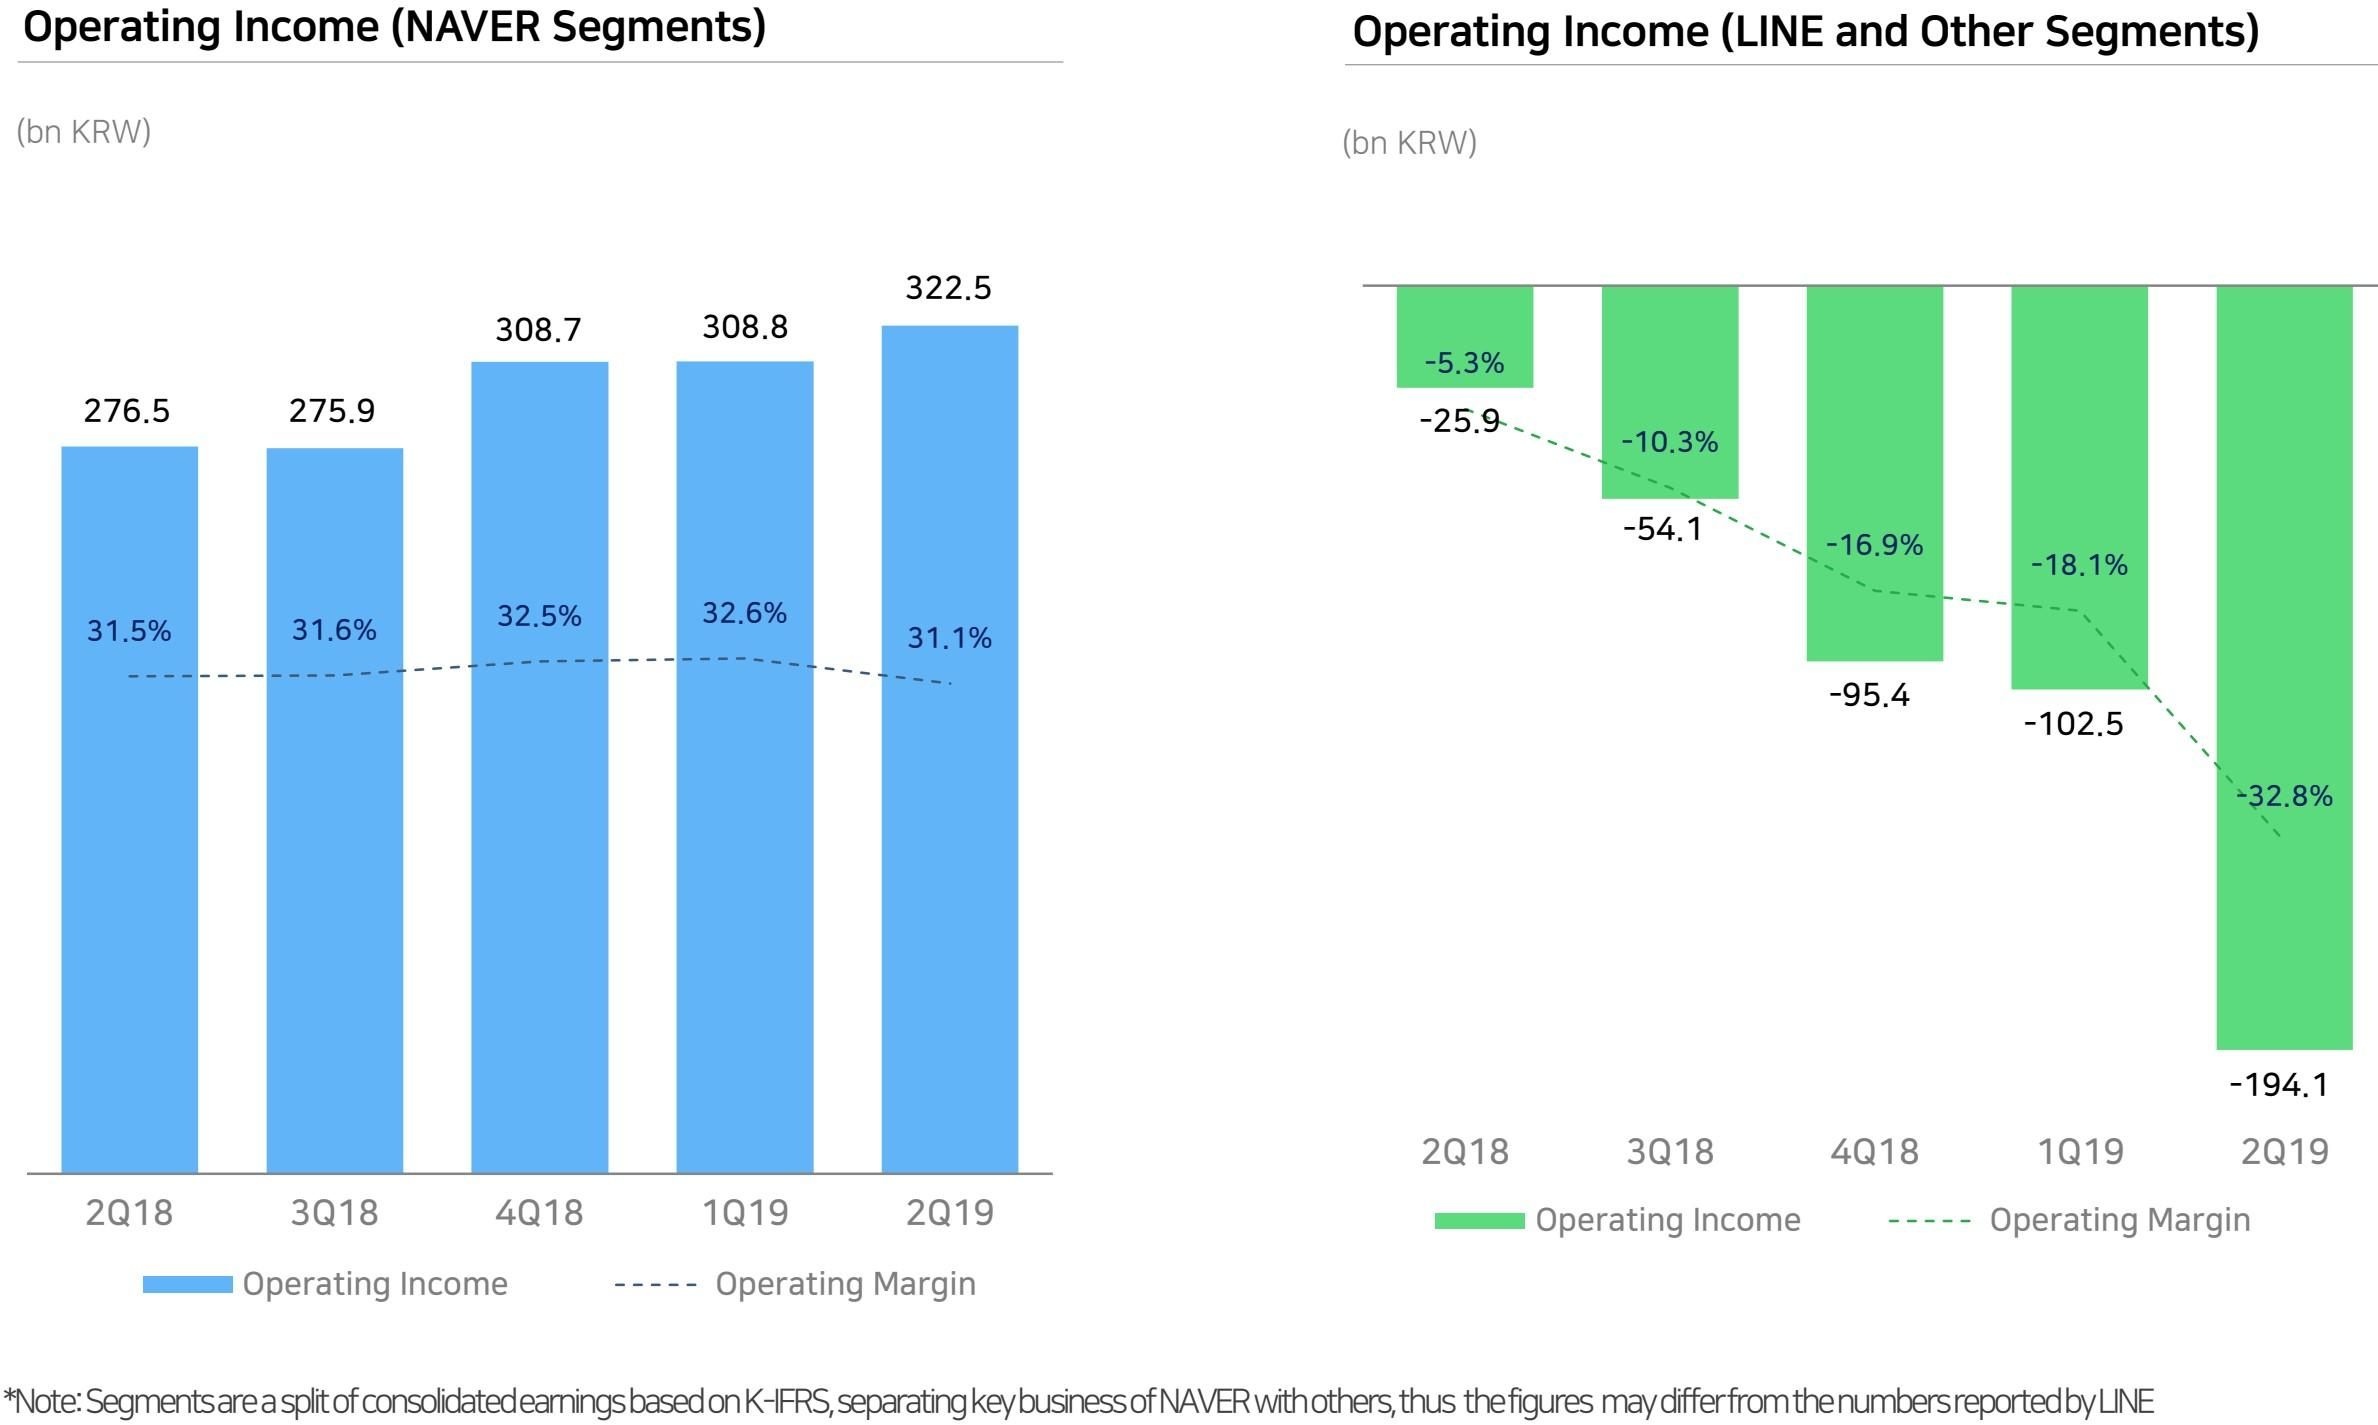 Naver Corporation: Spin-Offs And Potential Listings To Narrow Valuation Discount